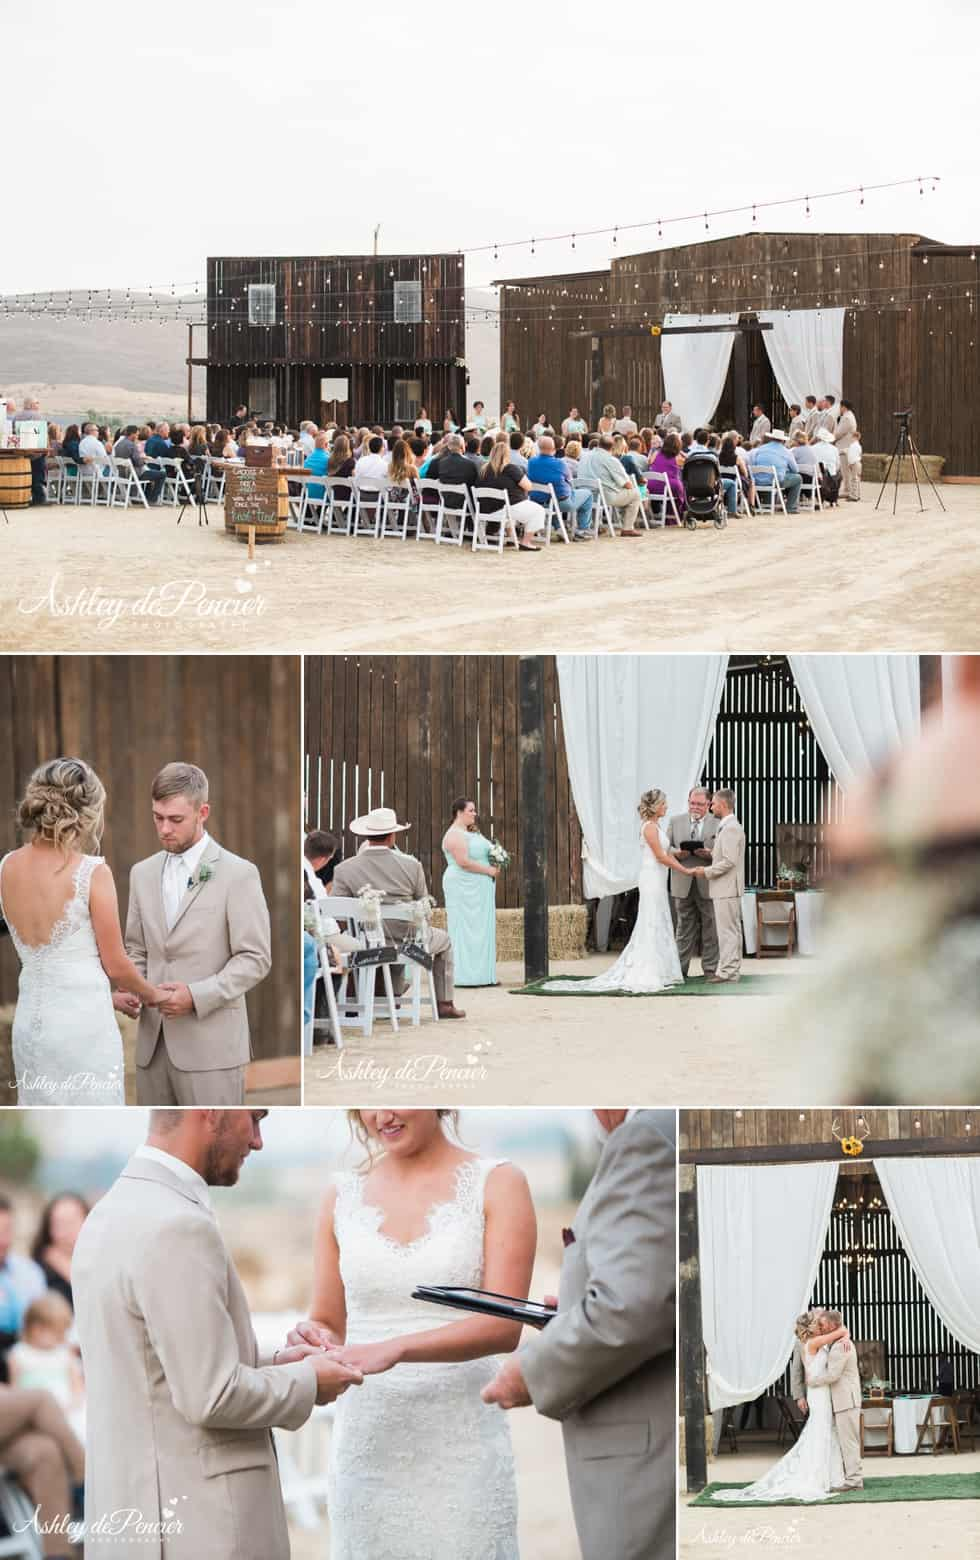 Breann and Kyle's Rustic Wedding 23